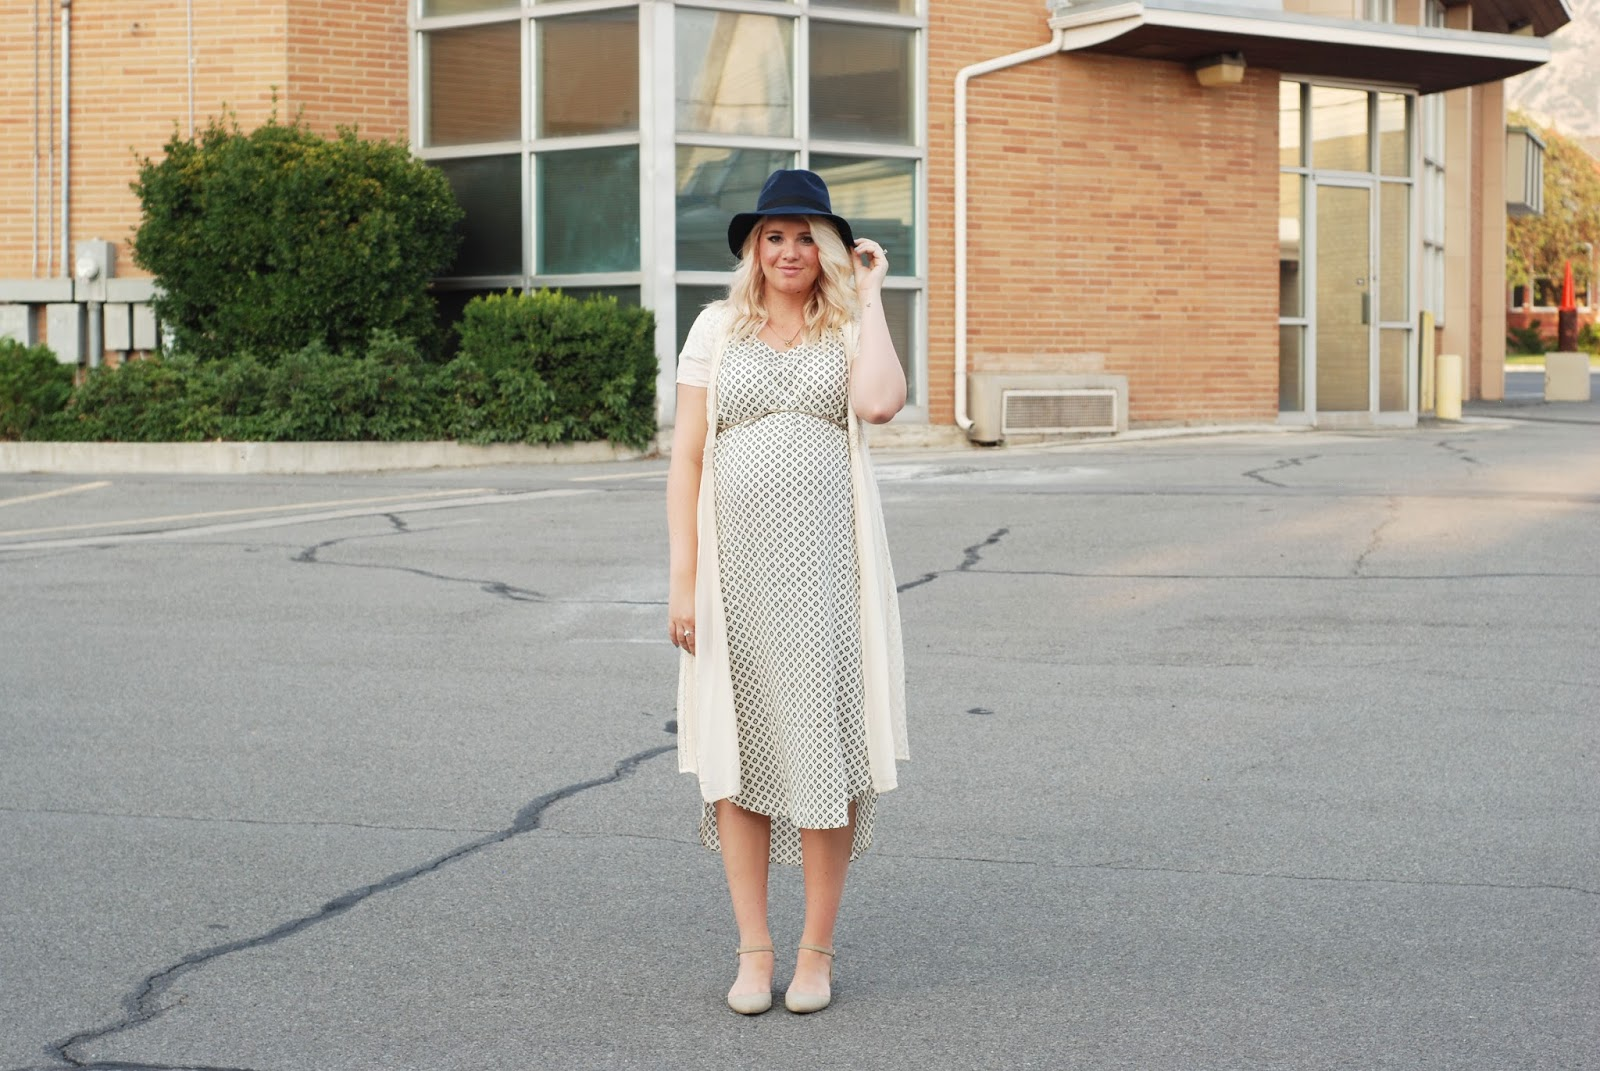 Brass Button Clothing, T-Shirt Dress, Maternity Outfit